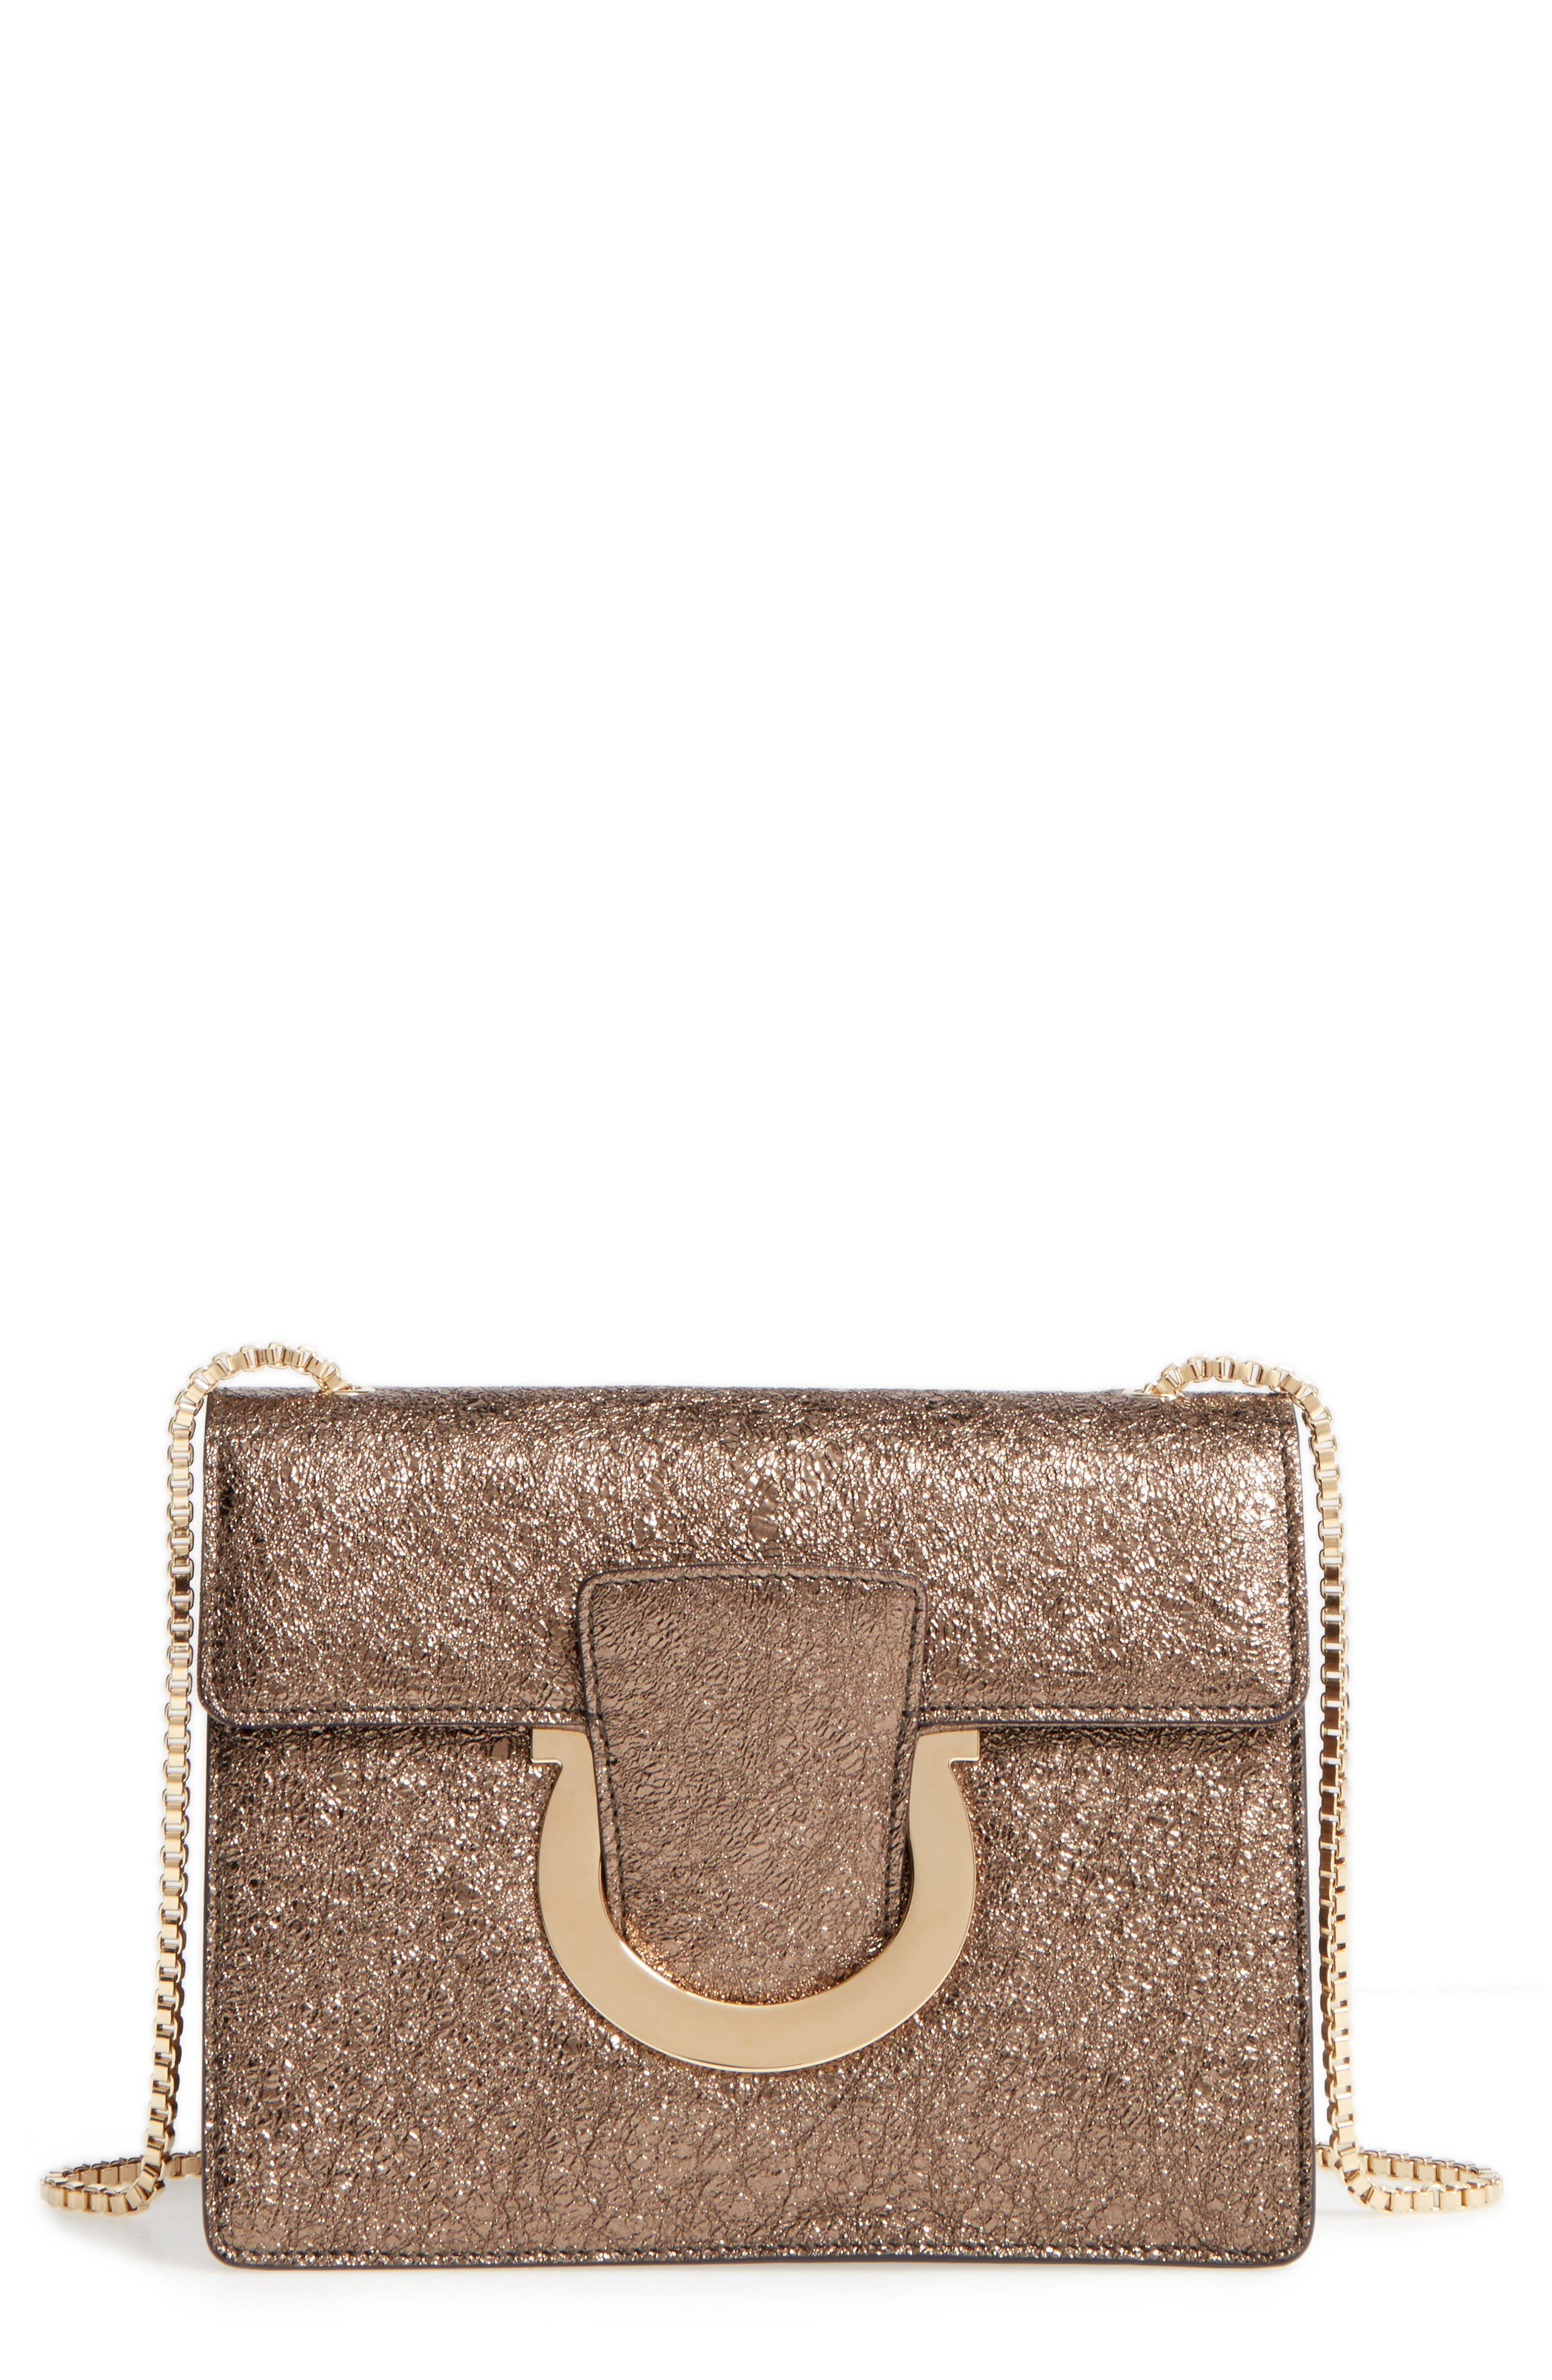 Main Image - Salvatore Ferragamo Small Metallic Leather Chain Shoulder Bag